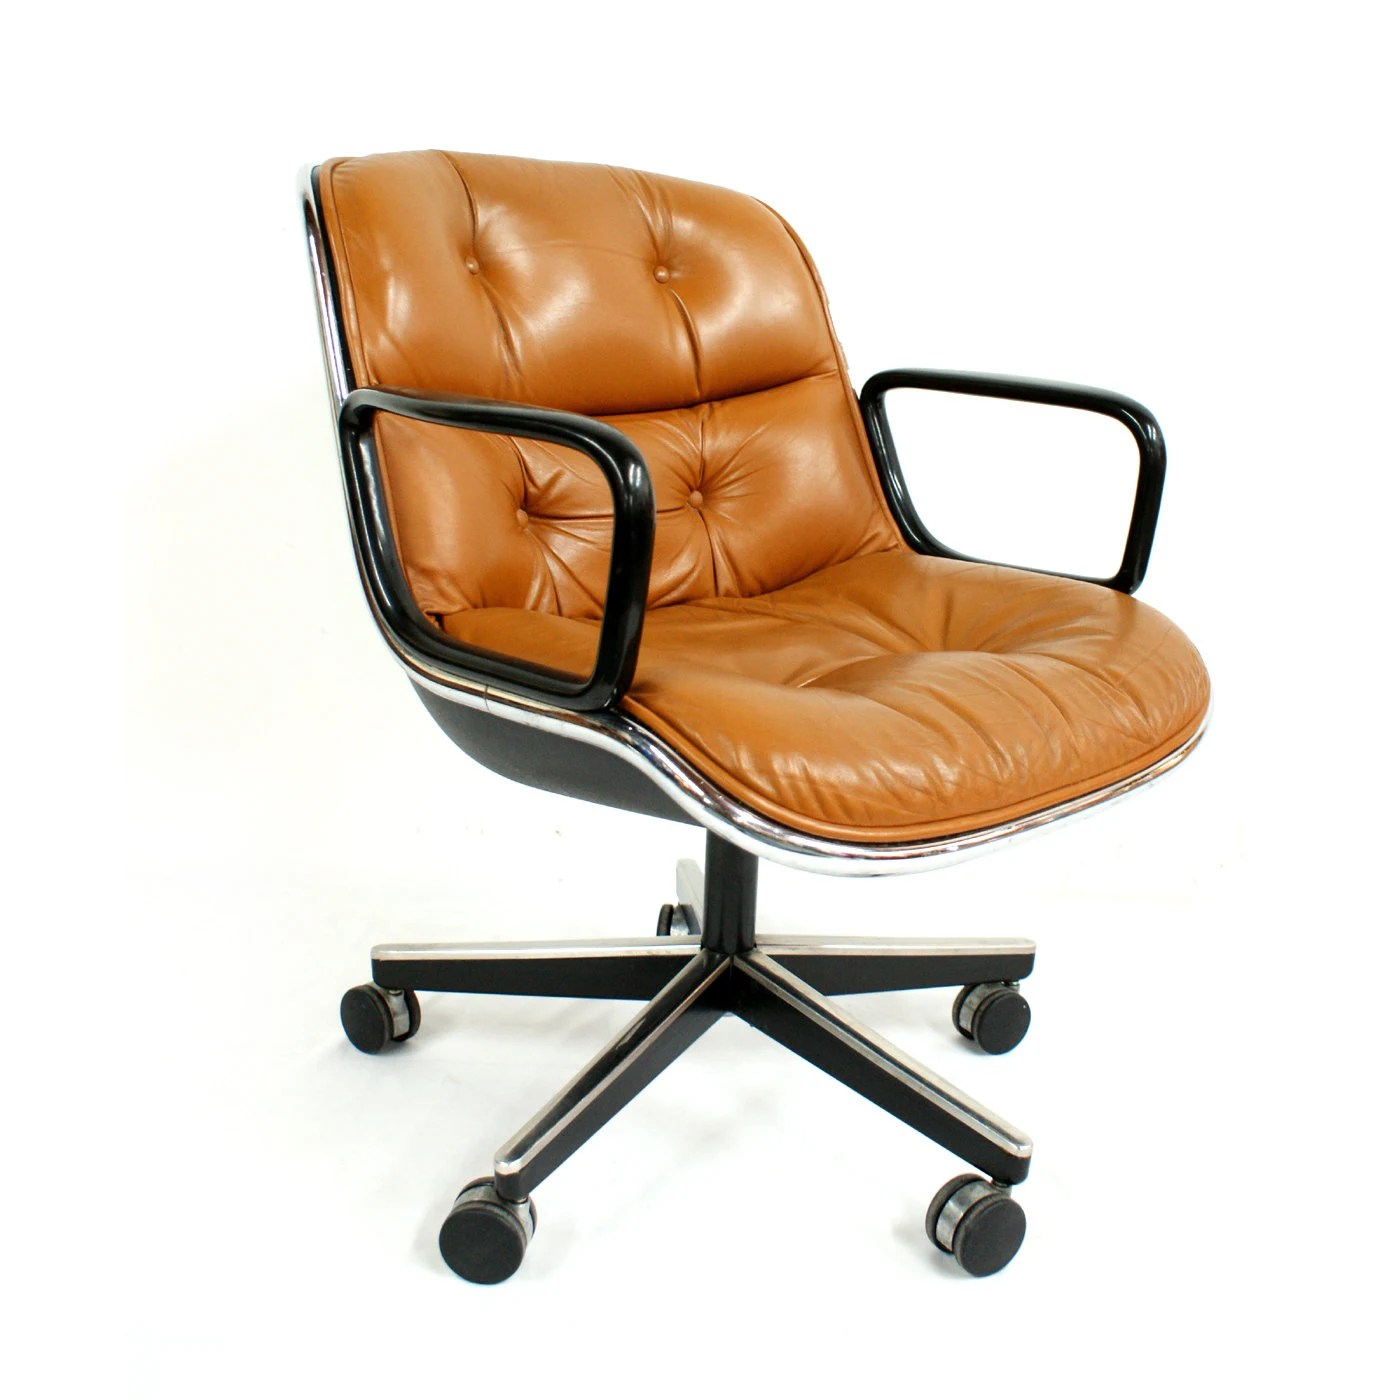 Knoll Pollock Chair Knoll Brown Leather Charles Pollock Chair